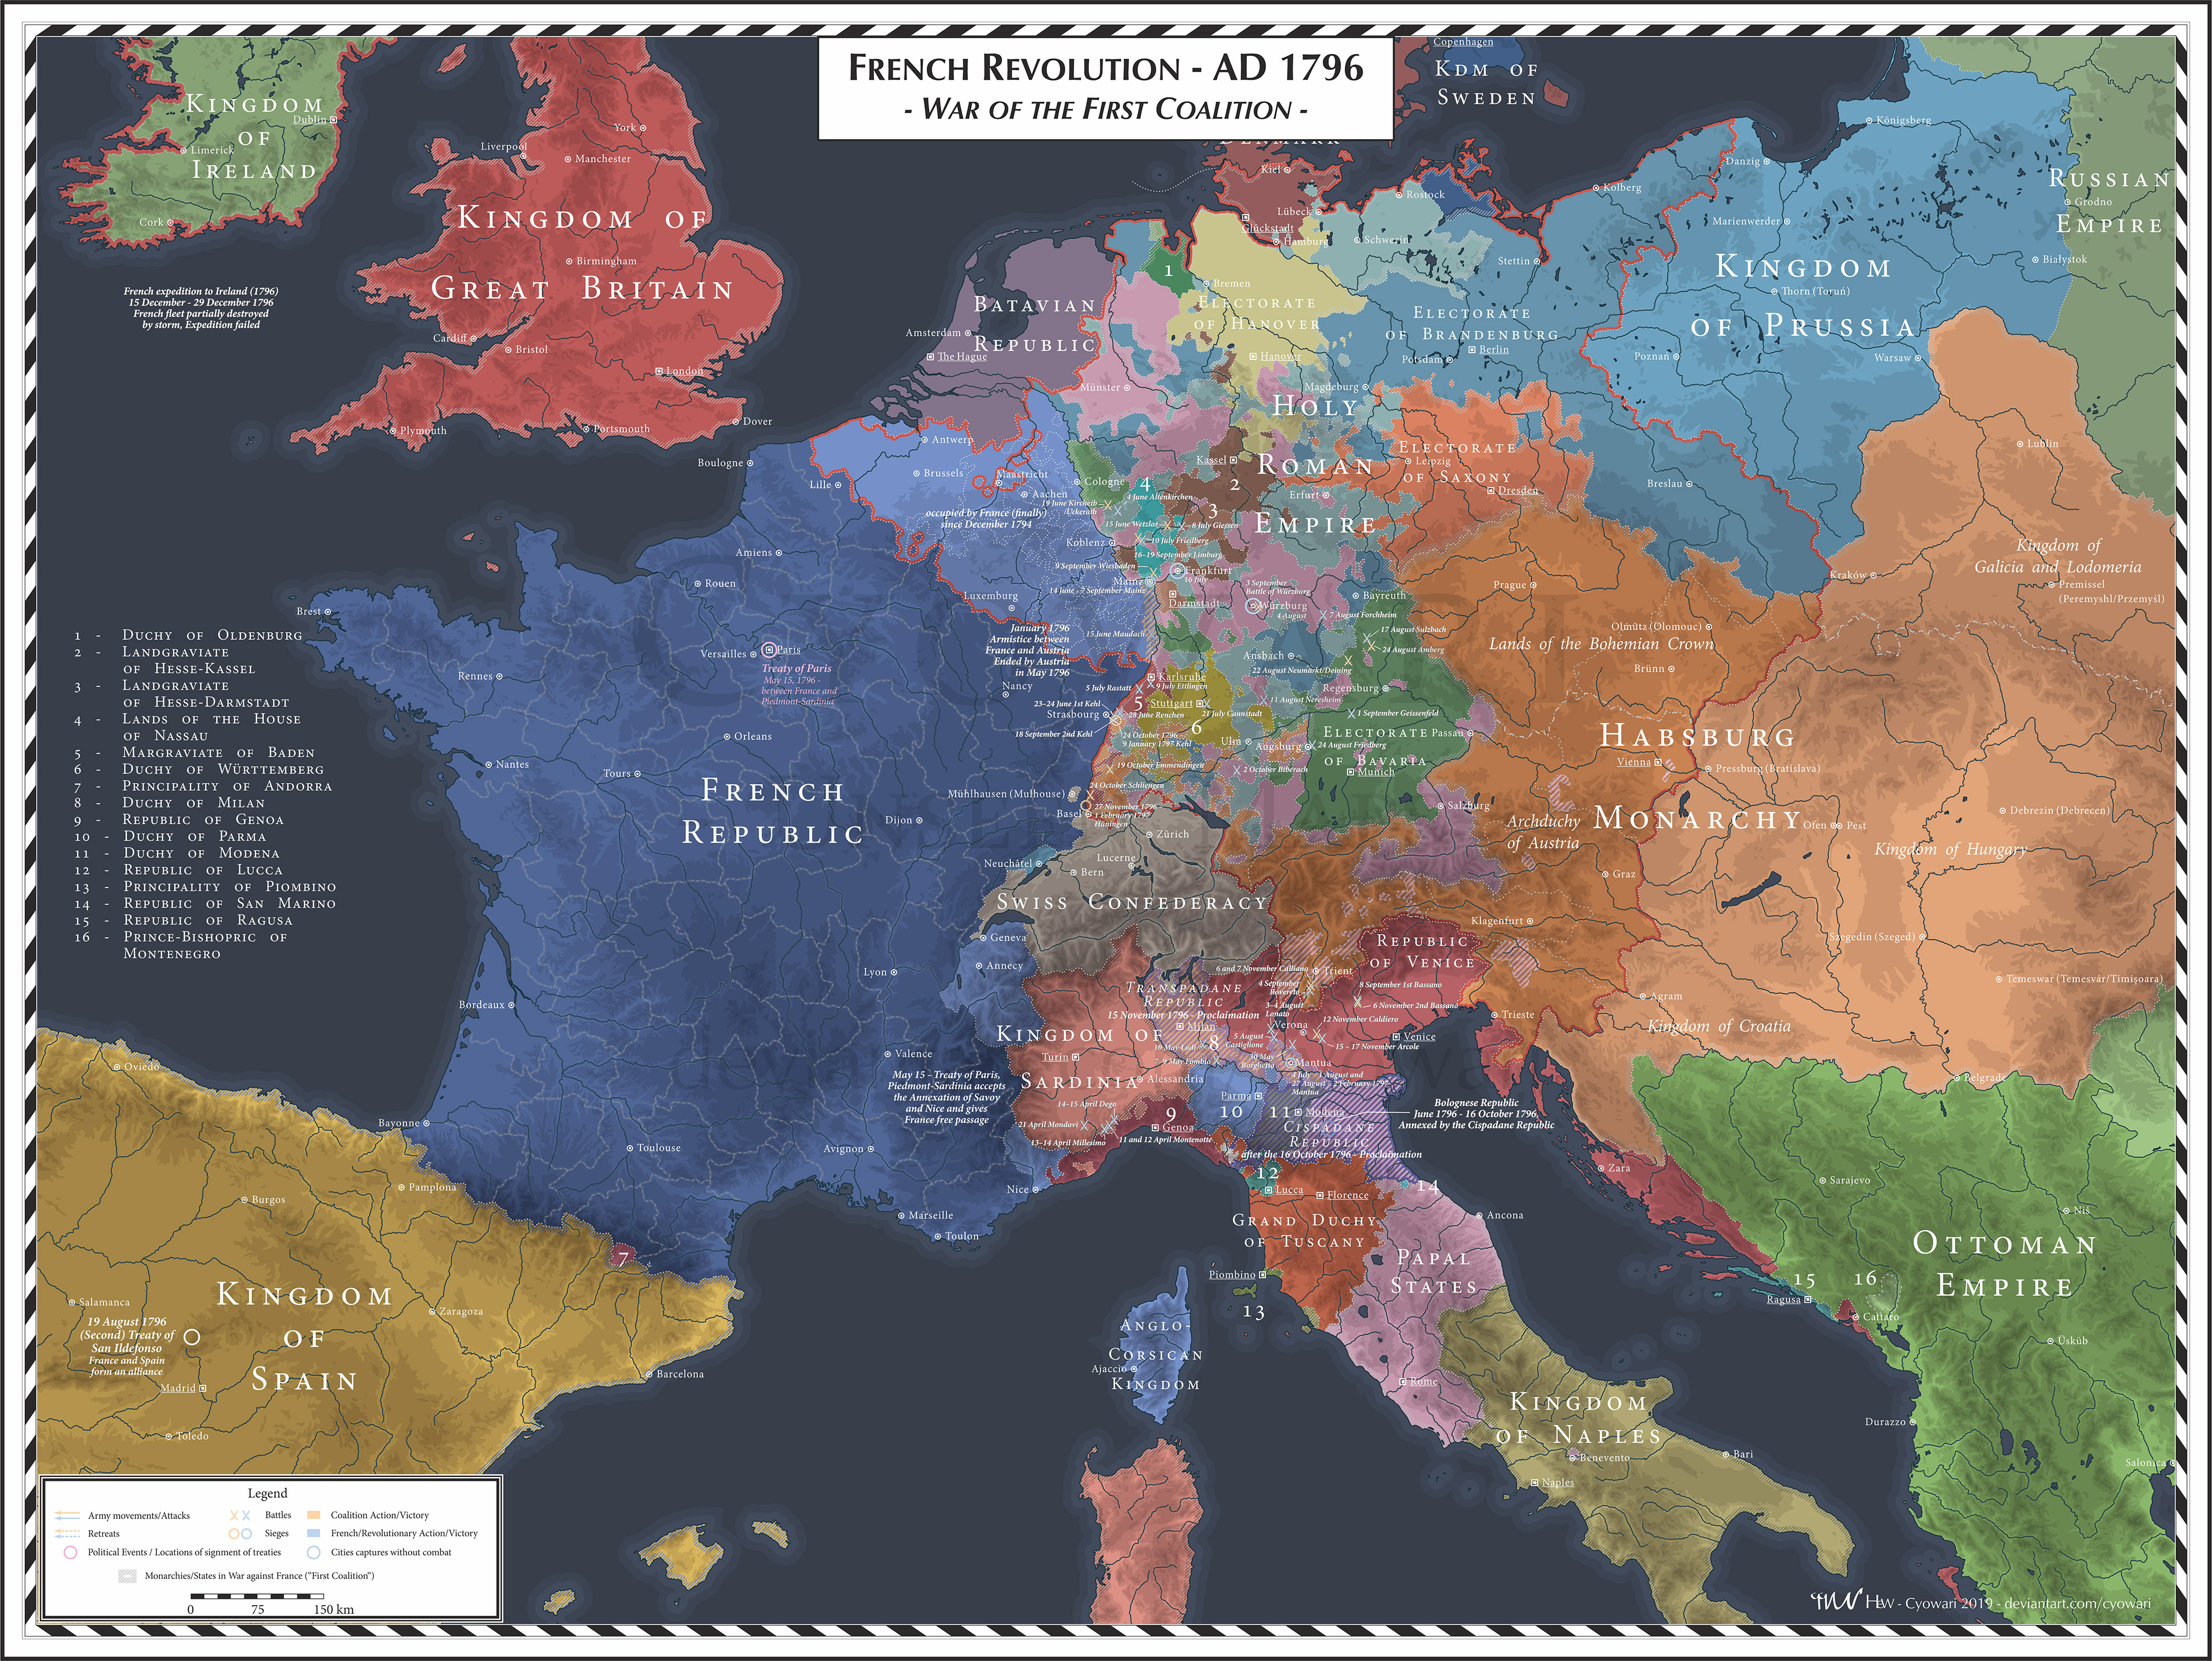 French Revolution - 1796 - First Coalition